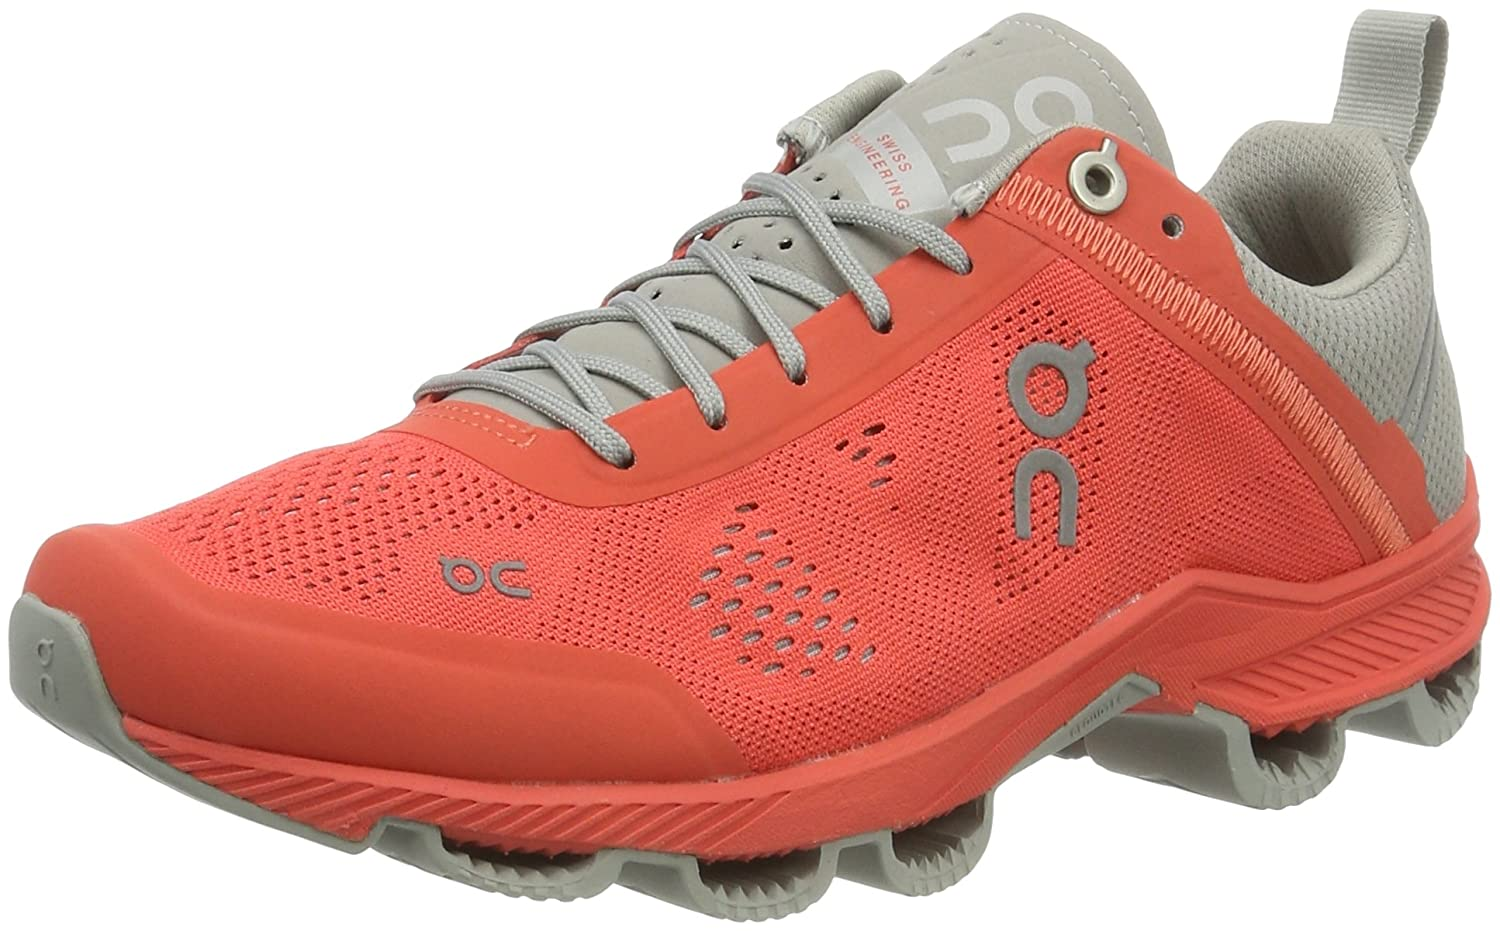 ON Women's Cloudsurfer Sneaker B00YYJ34Y2 7 B(M) US|Lava/Glacier